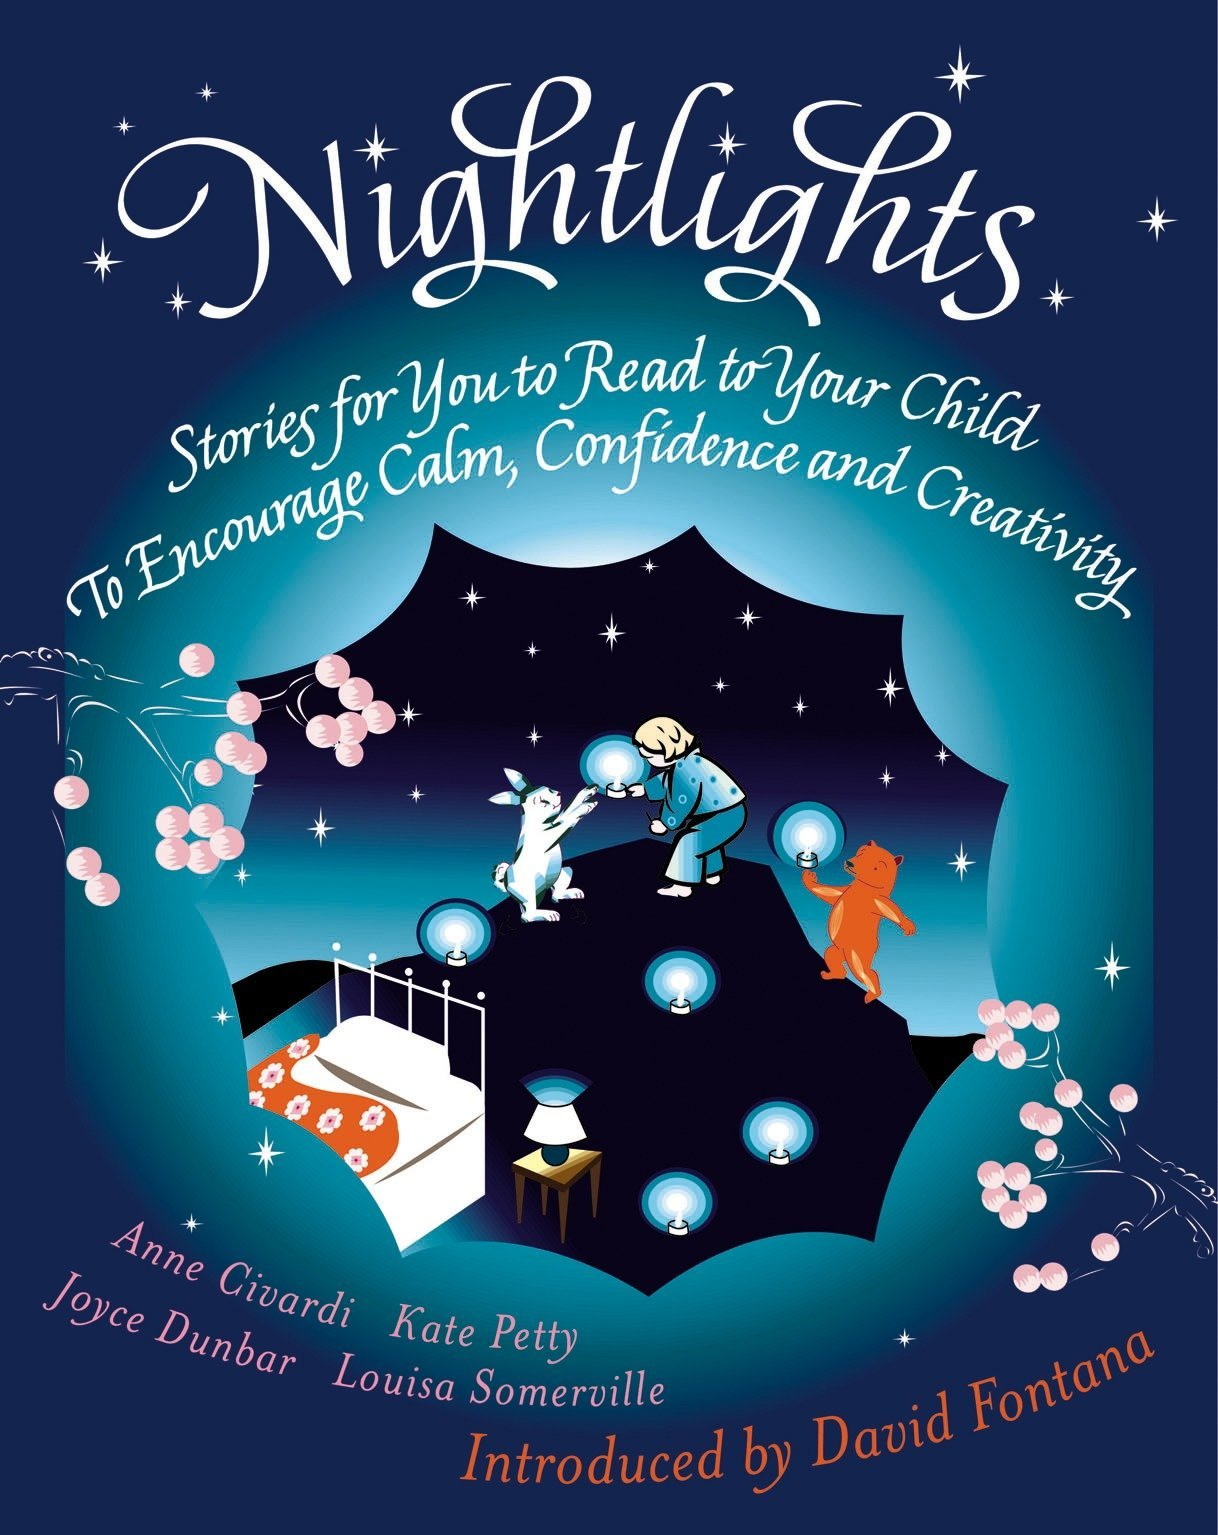 Nightlights: Stories for You to Read to Your Child - To Encourage Calm, Confidence and Creativity